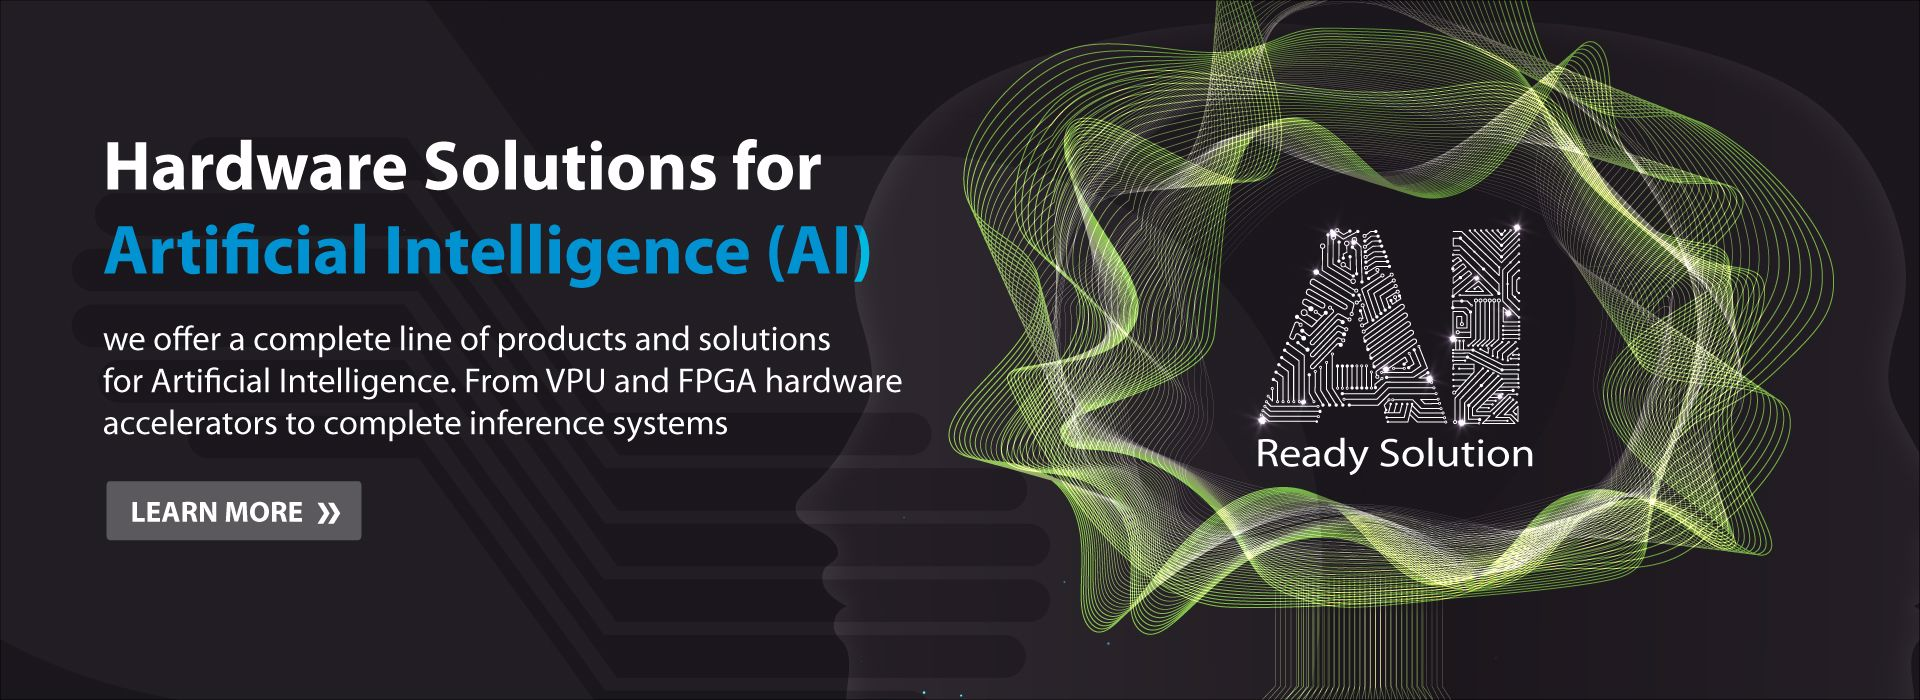 products and solutions for artificial intelligence